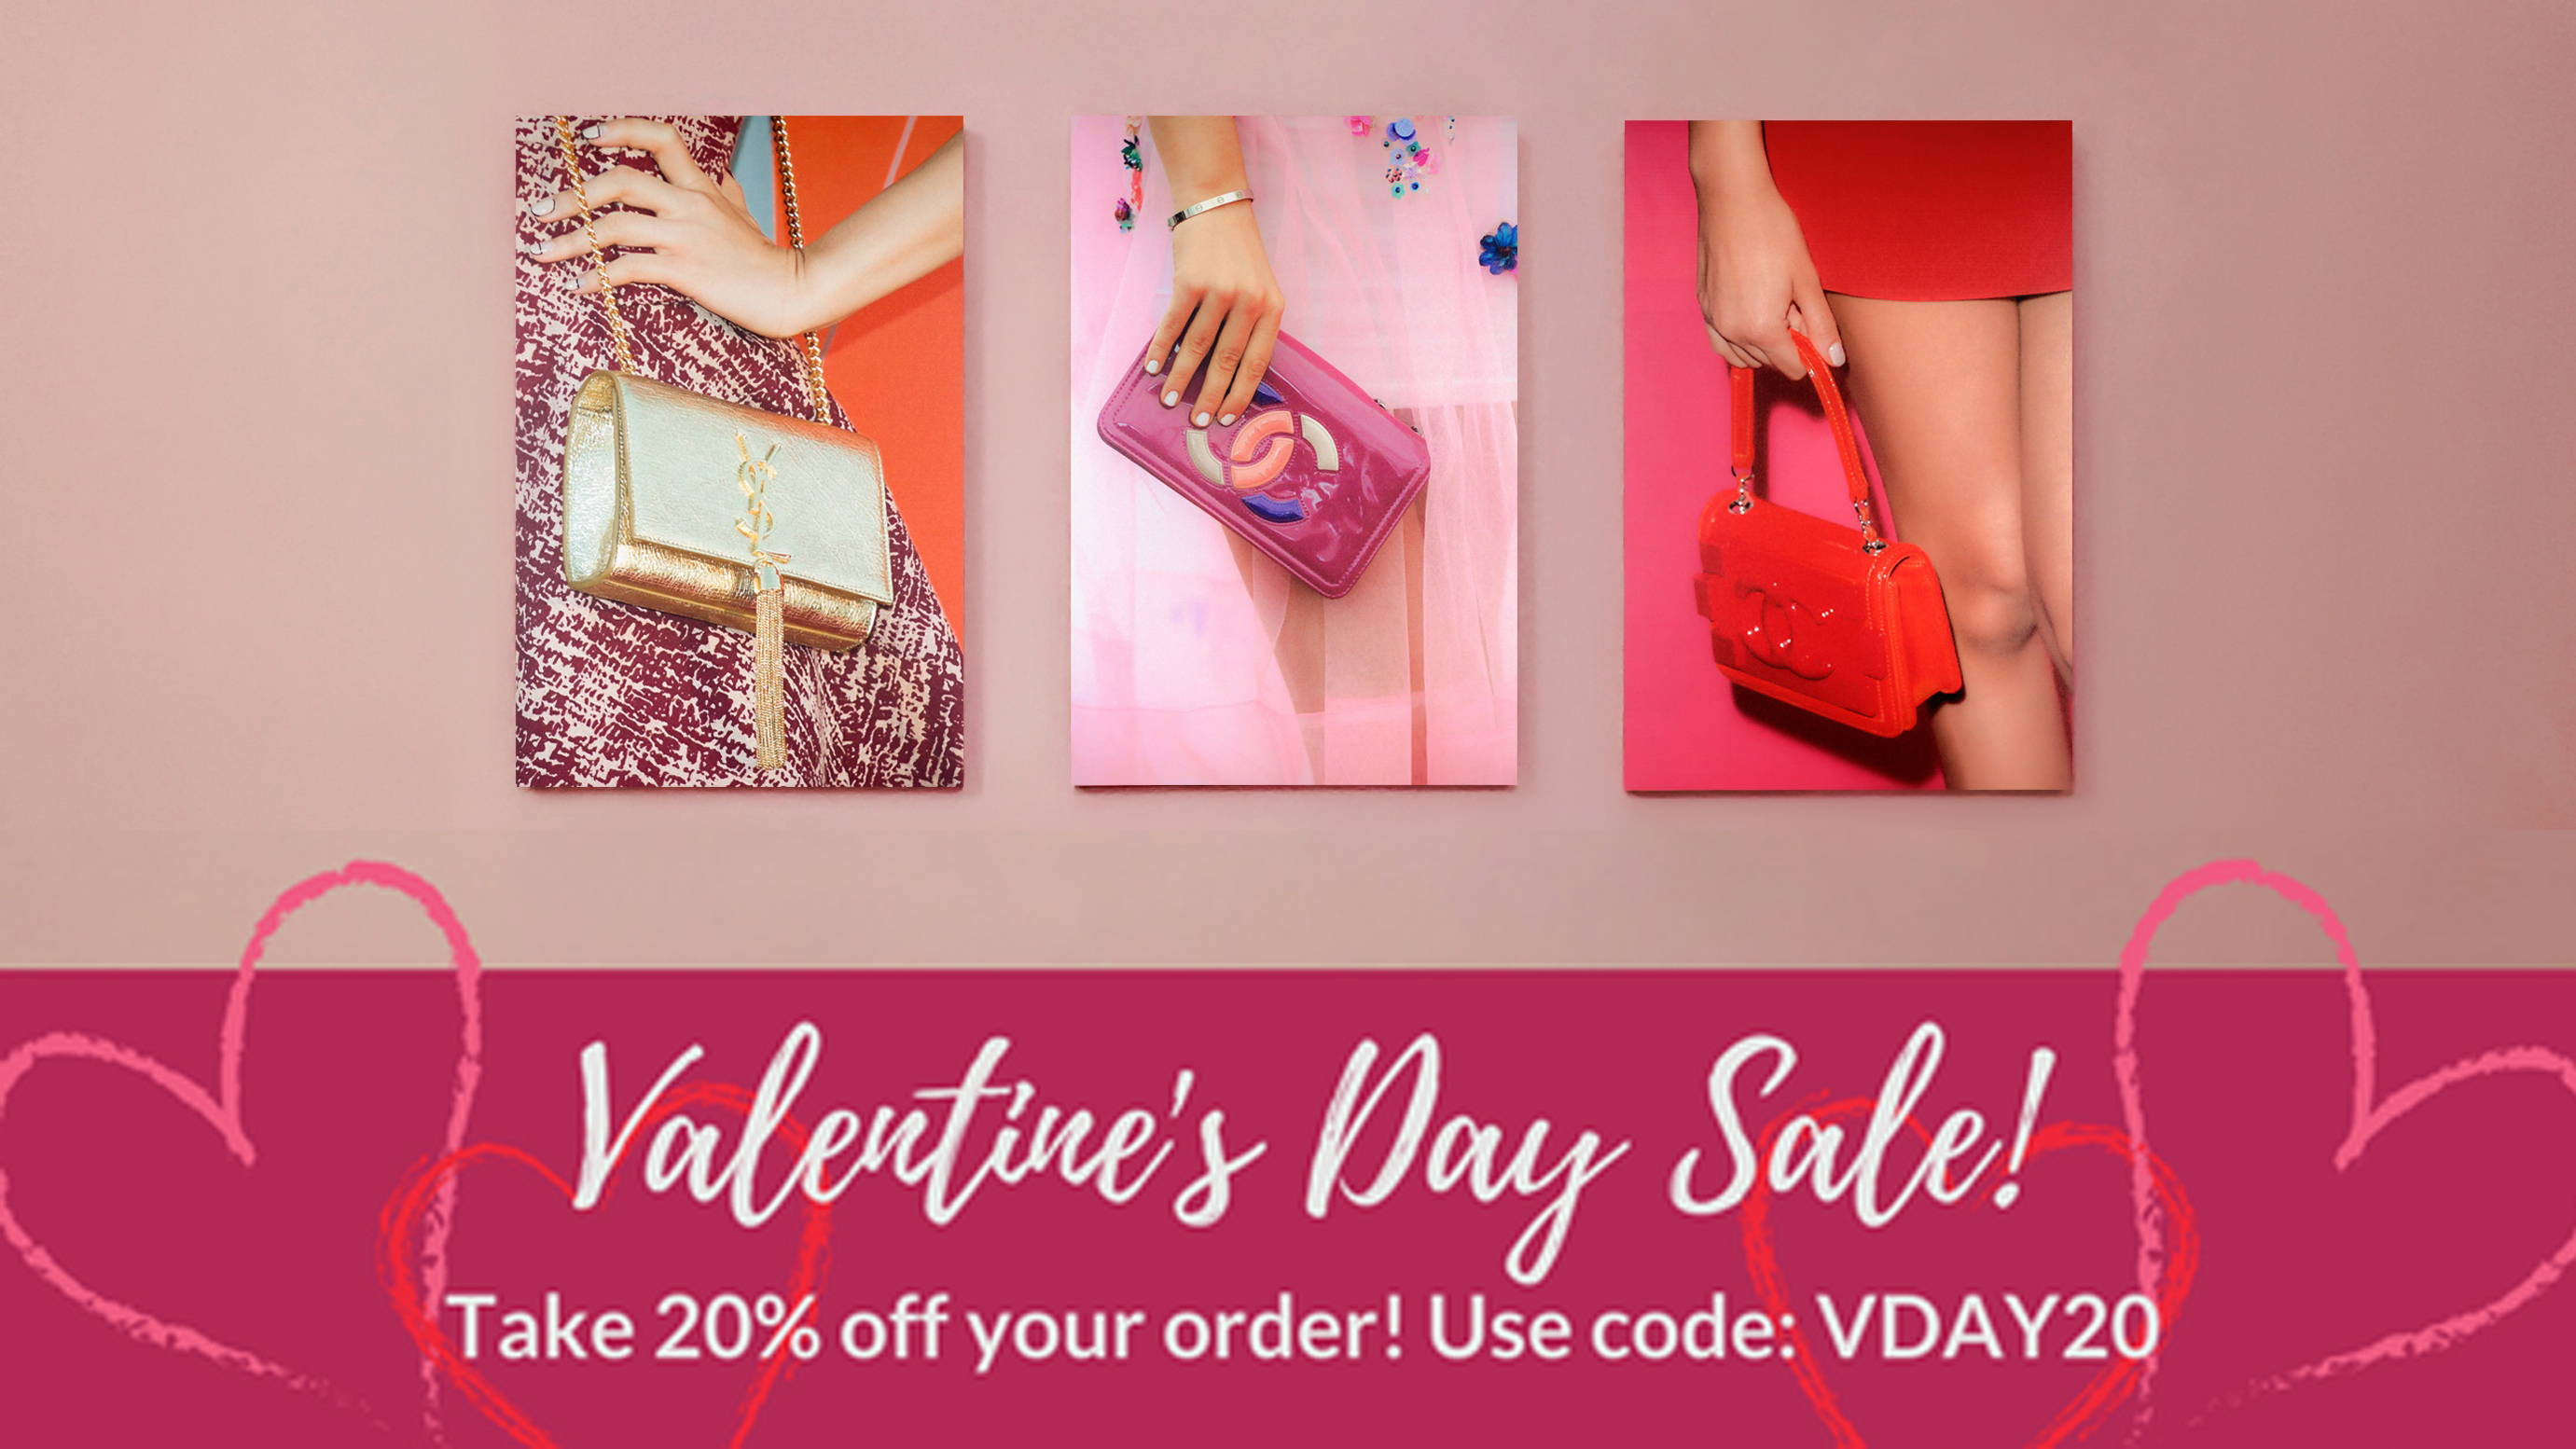 Recoveted Valentine's Day Sale